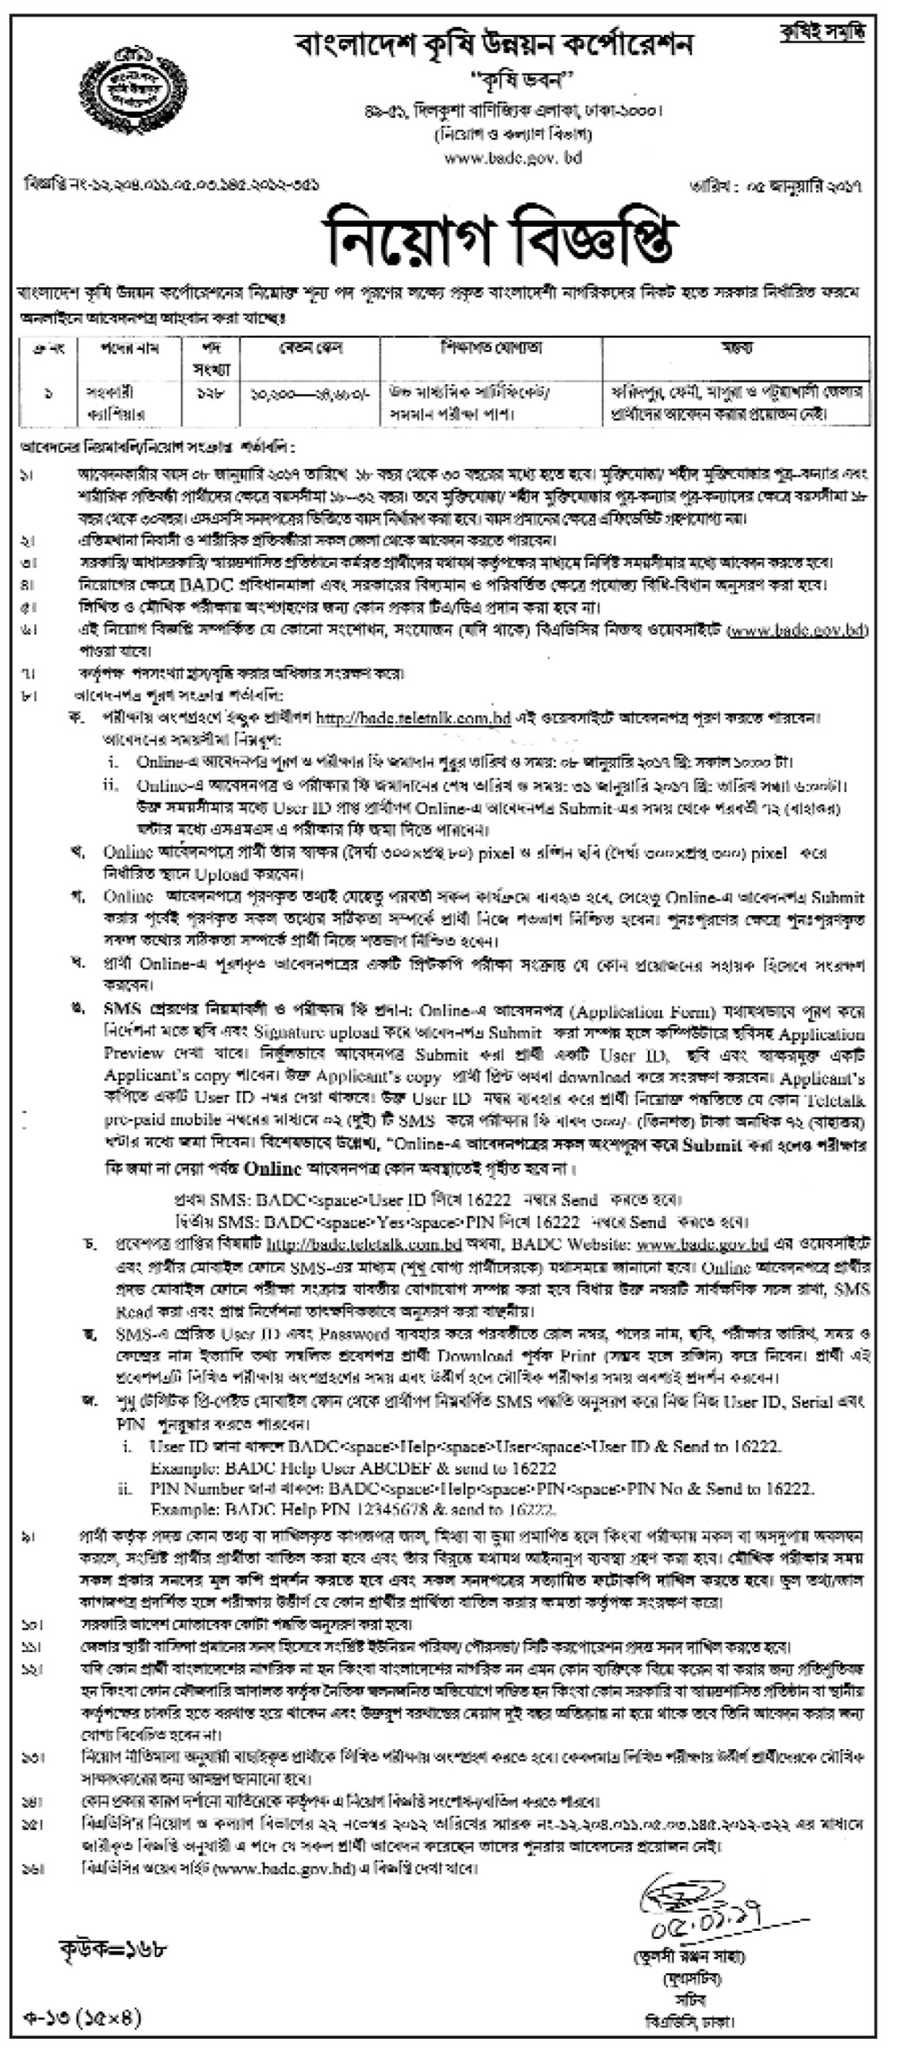 Bangladesh Agricultural Development Corporation Job Circular January 2017